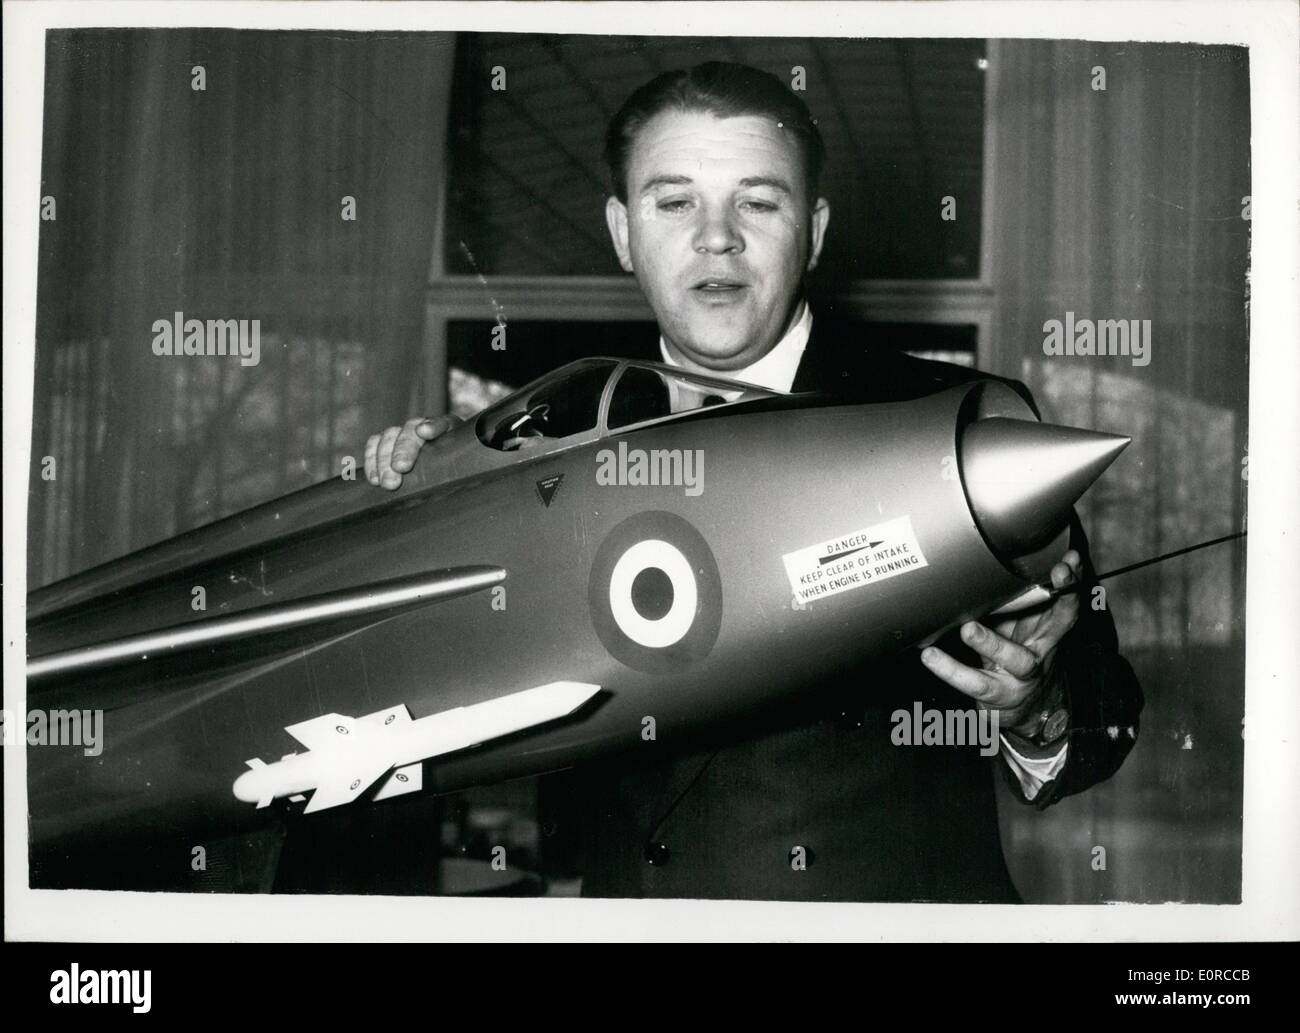 01, 1959 - Conference On New ''Twice The Speed Of Sound